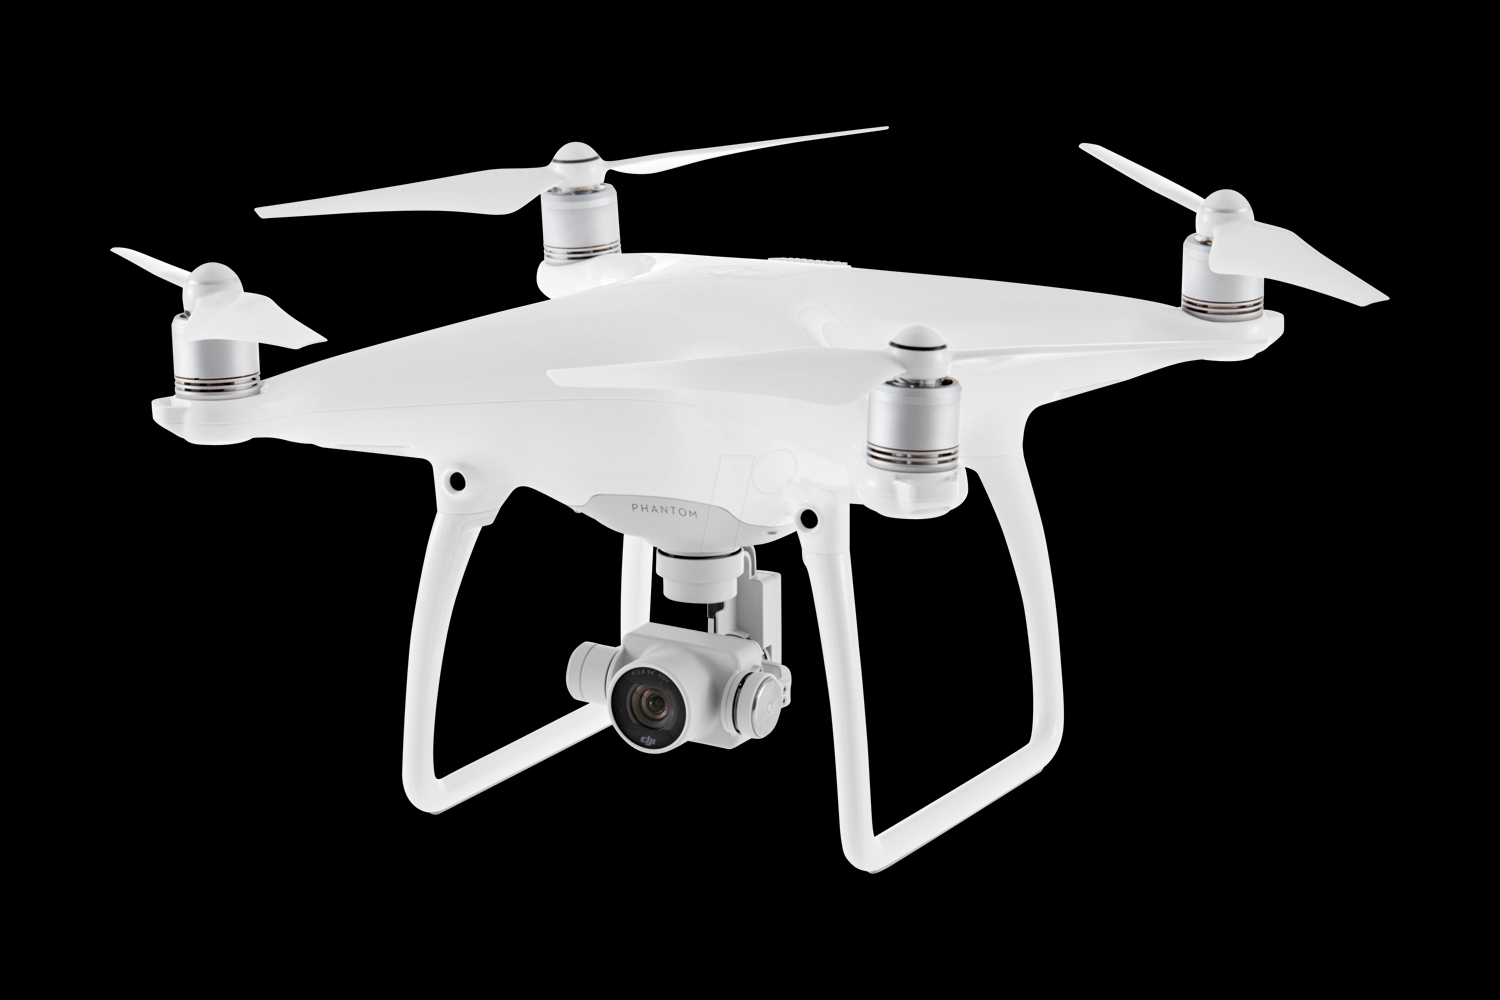 DJI Phantom 4 header